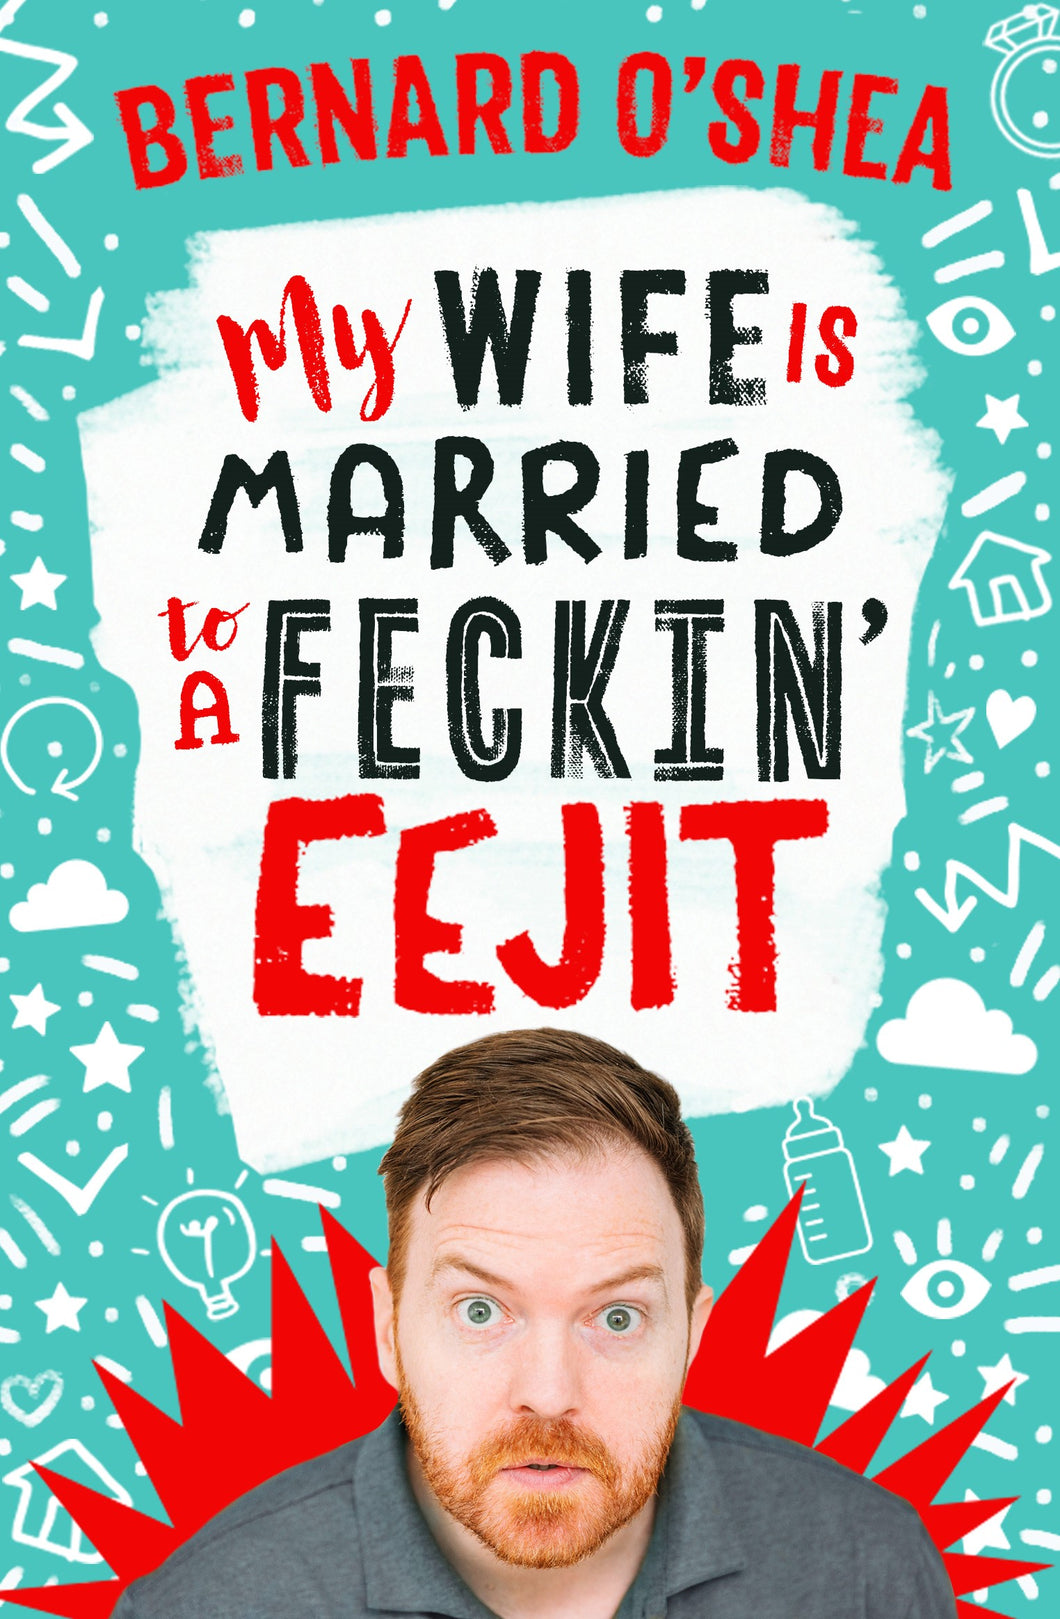 My Wife is Married to a Feckin' Eejit - Wednesday, 16th October